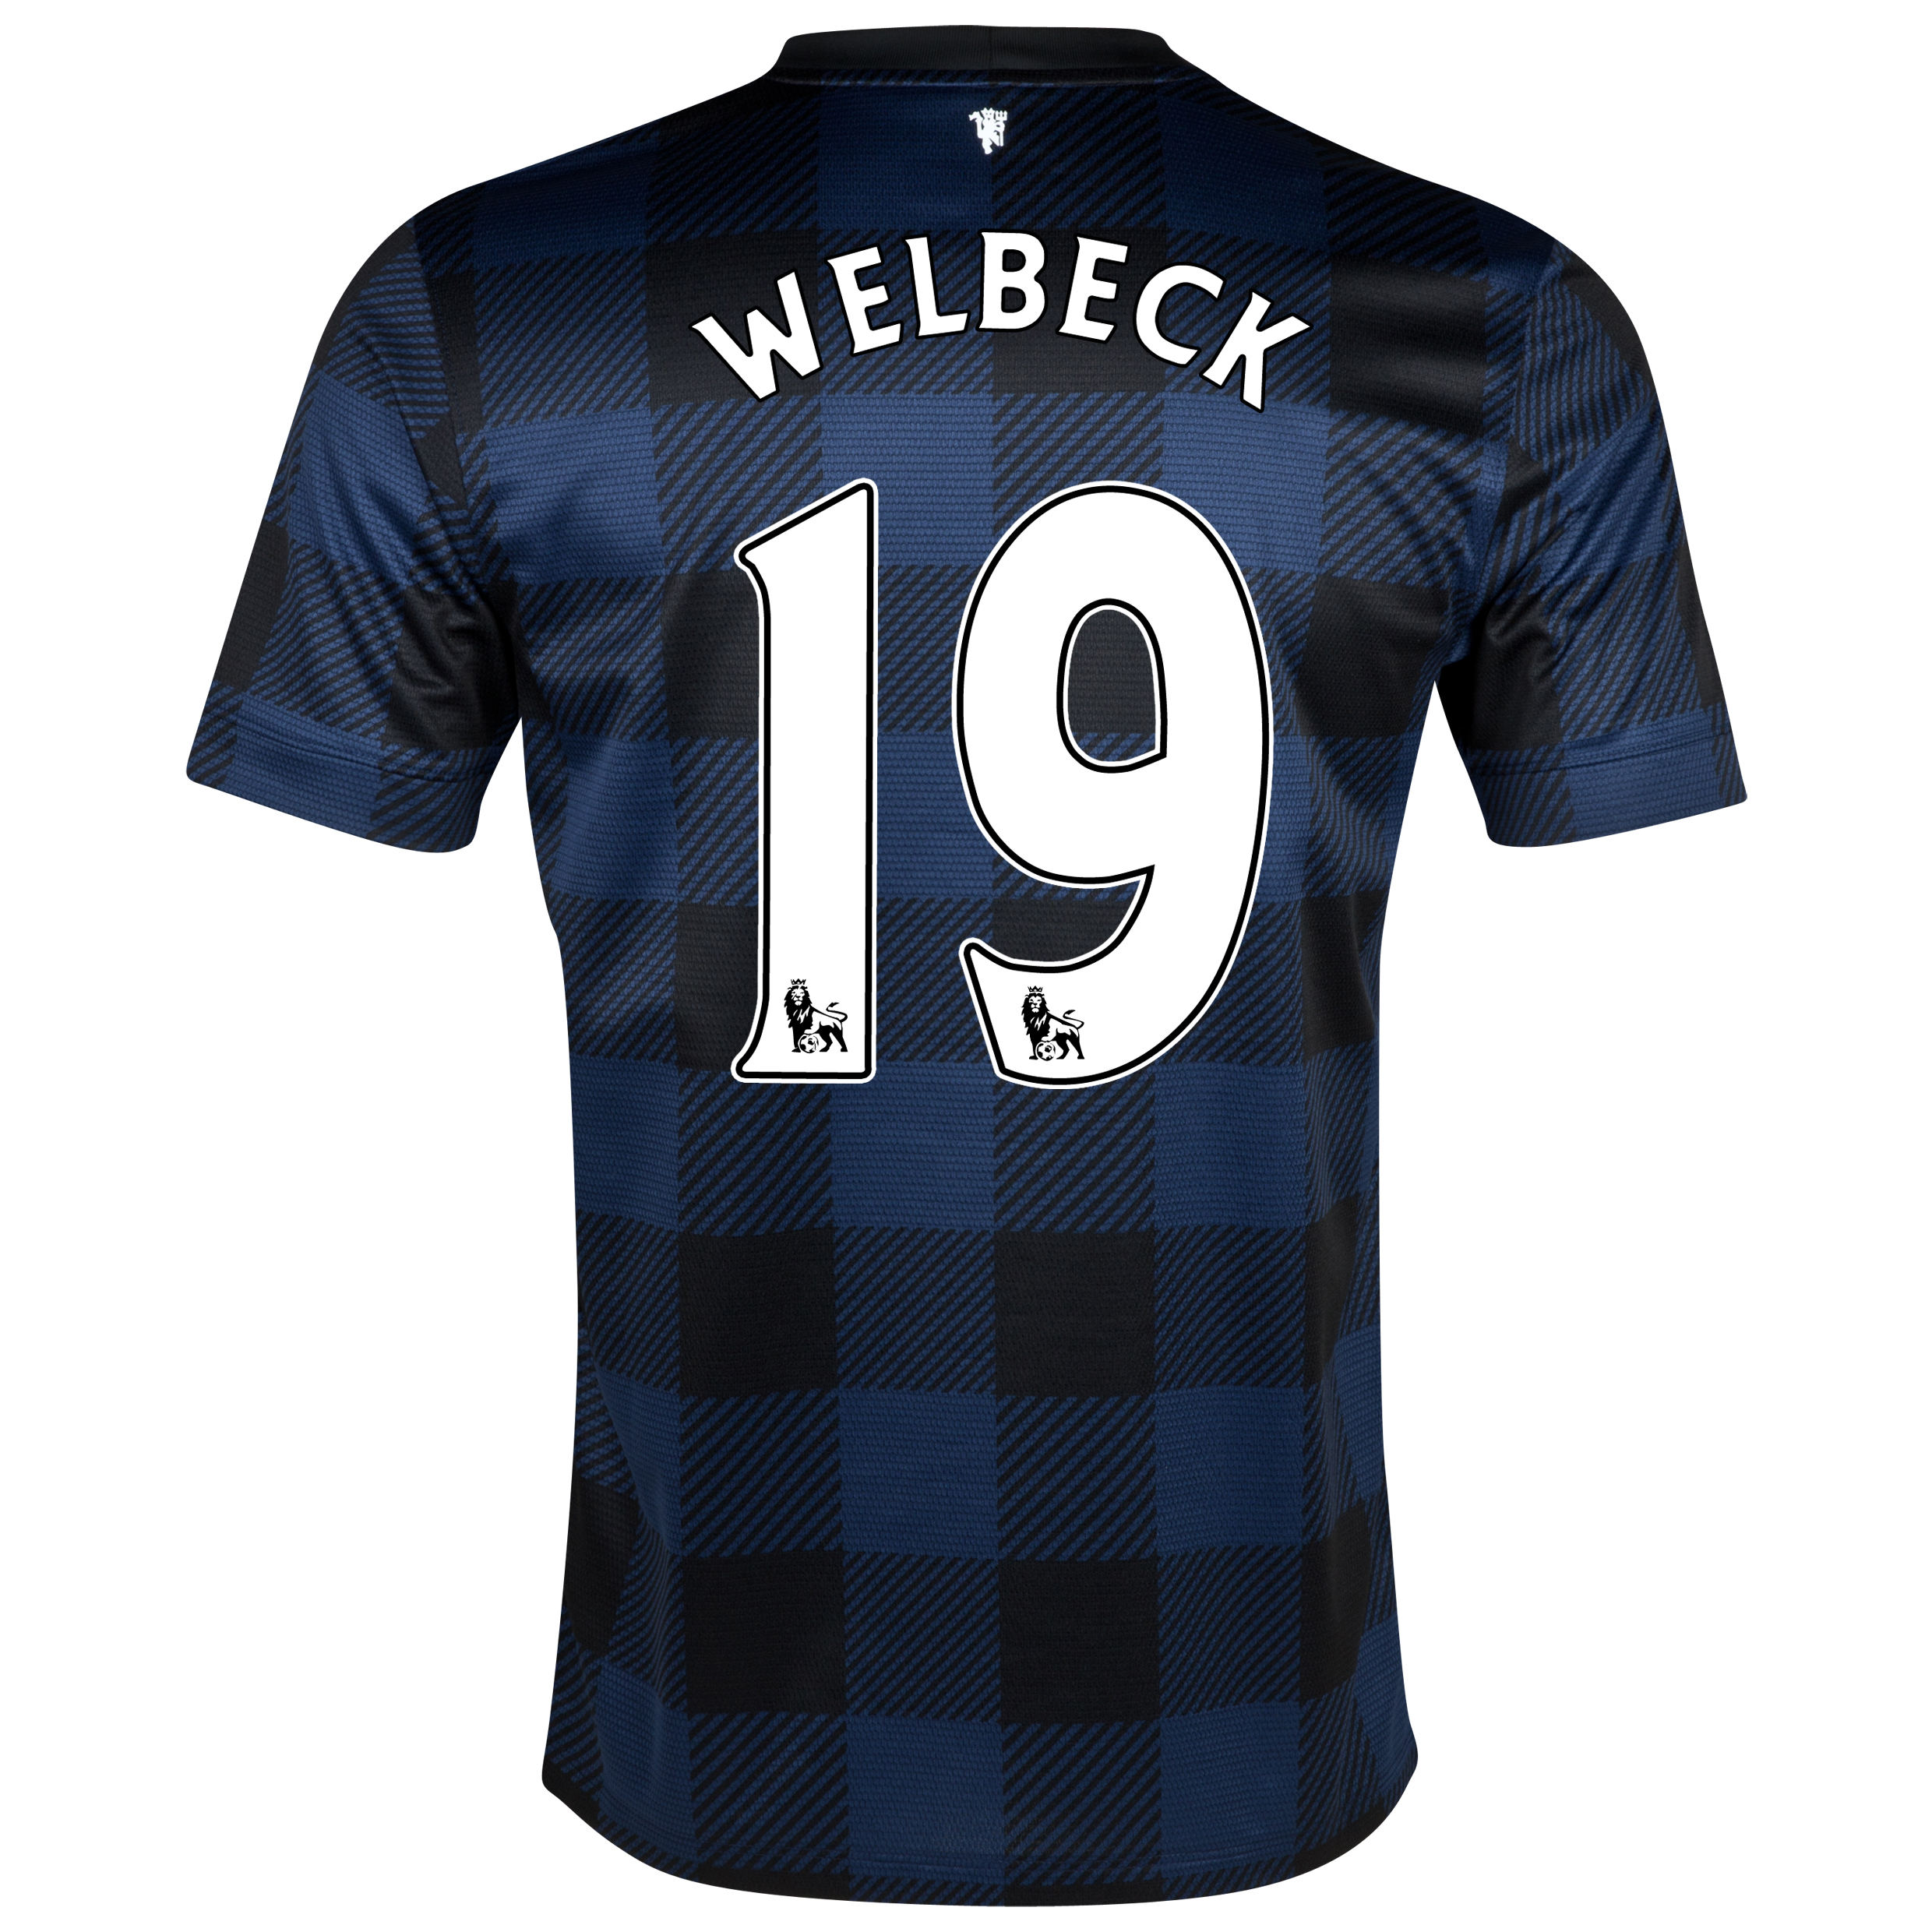 Manchester United Away Shirt 2013/14 with Welbeck 19 printing